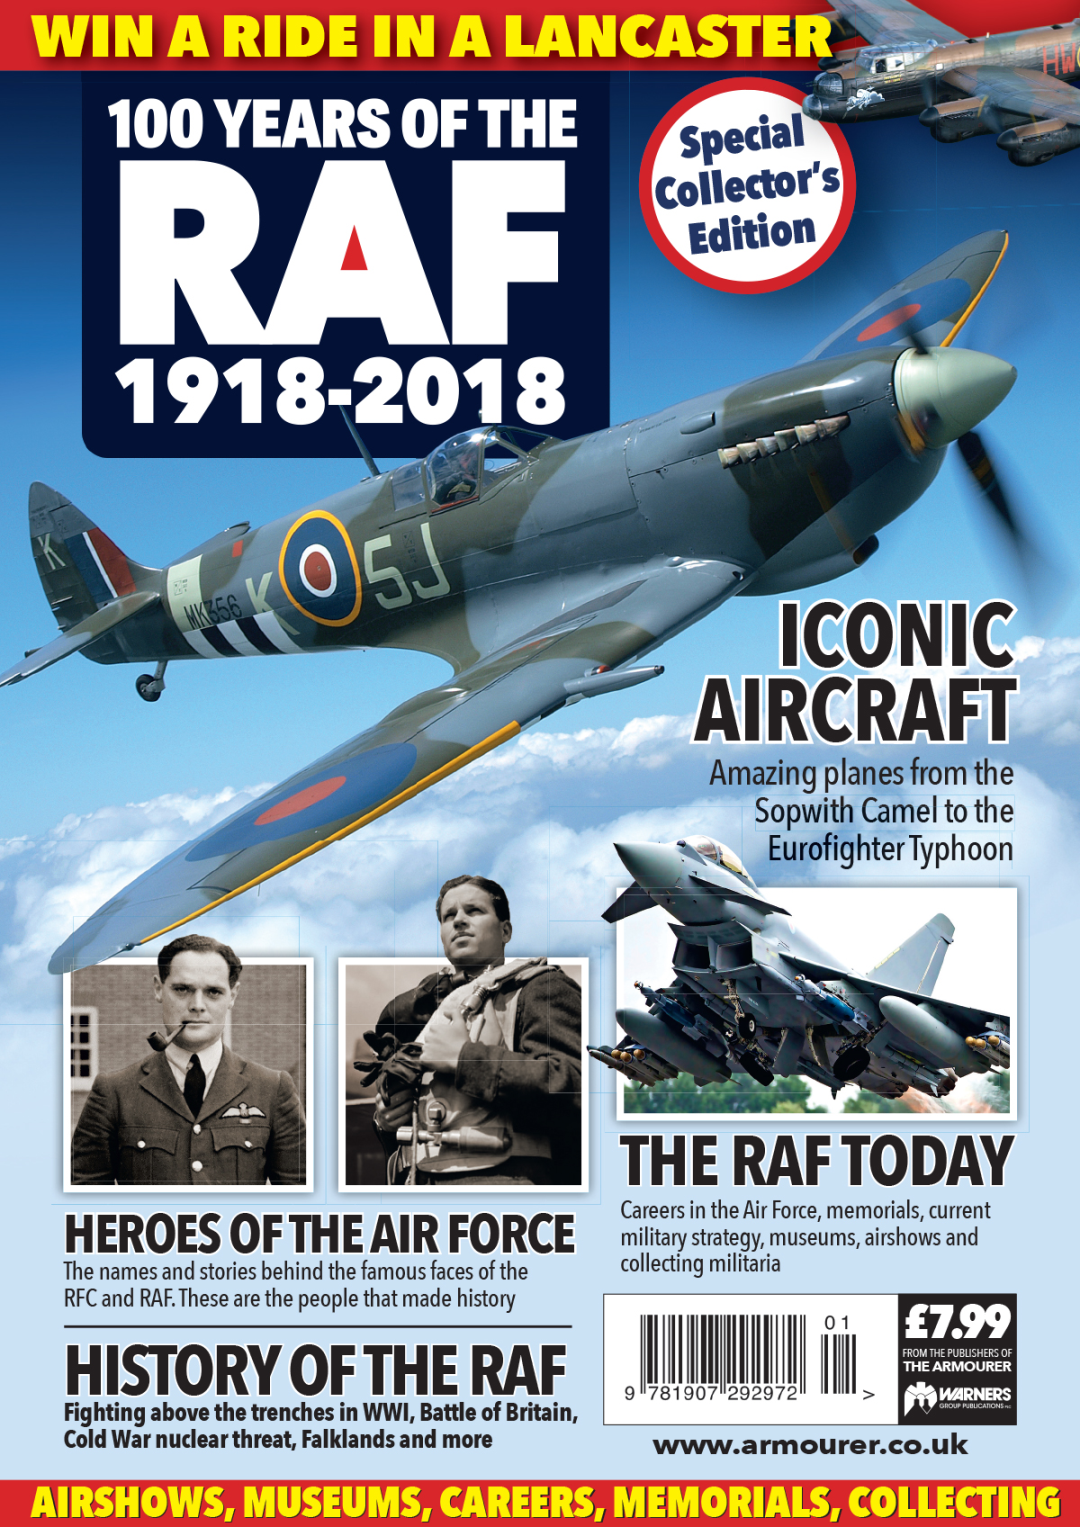 100 YEARS OF THE RAF 1918-2018 - Militaria History